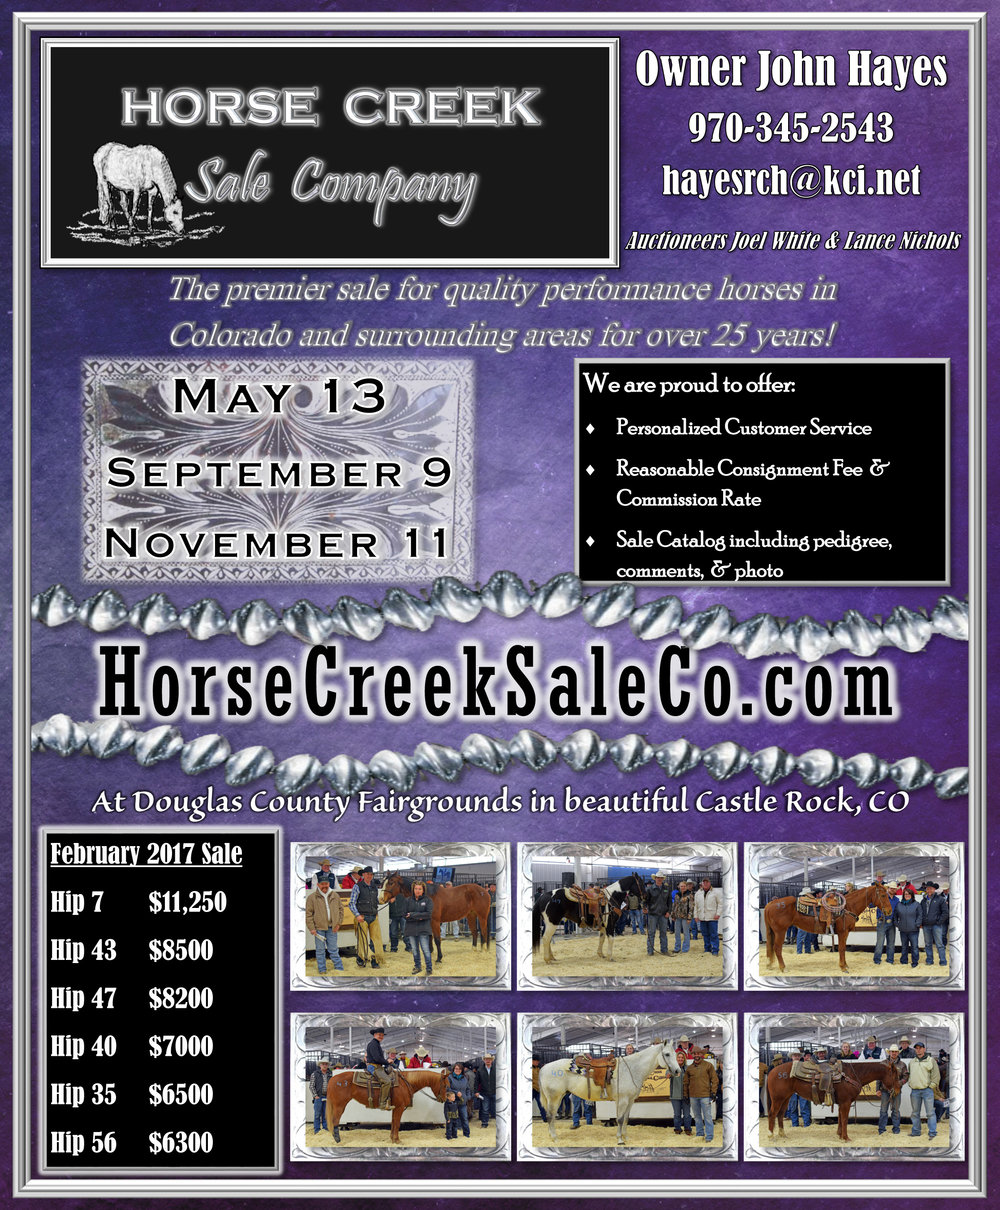 Horse Creek Sale Company